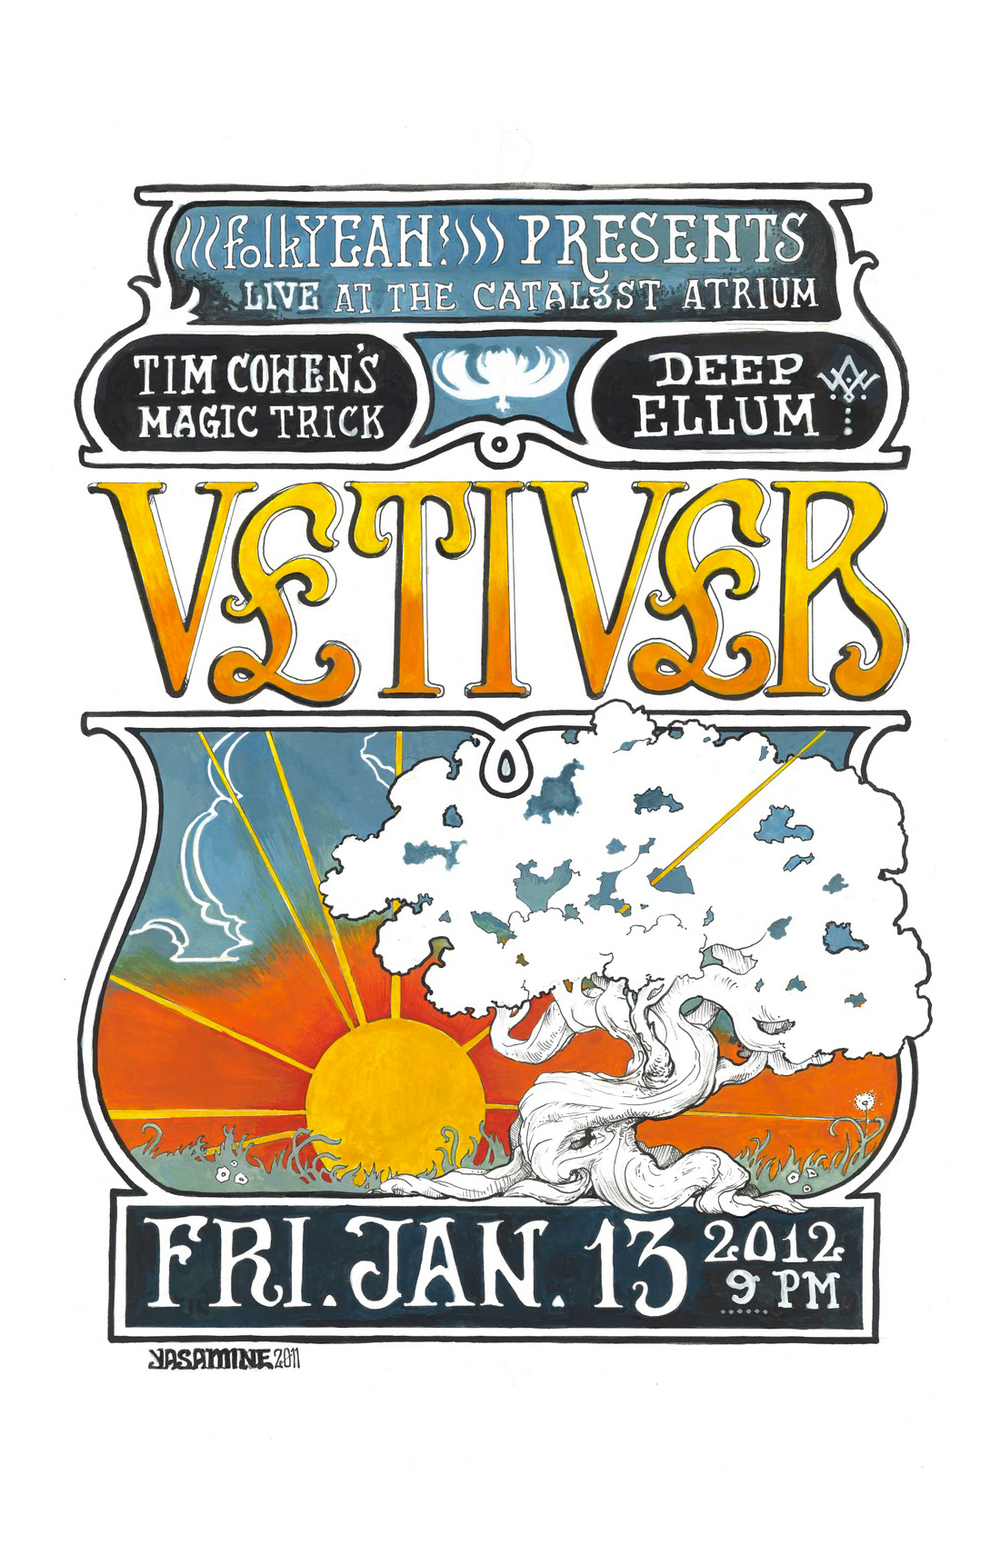 Concert Poster for Vetiver